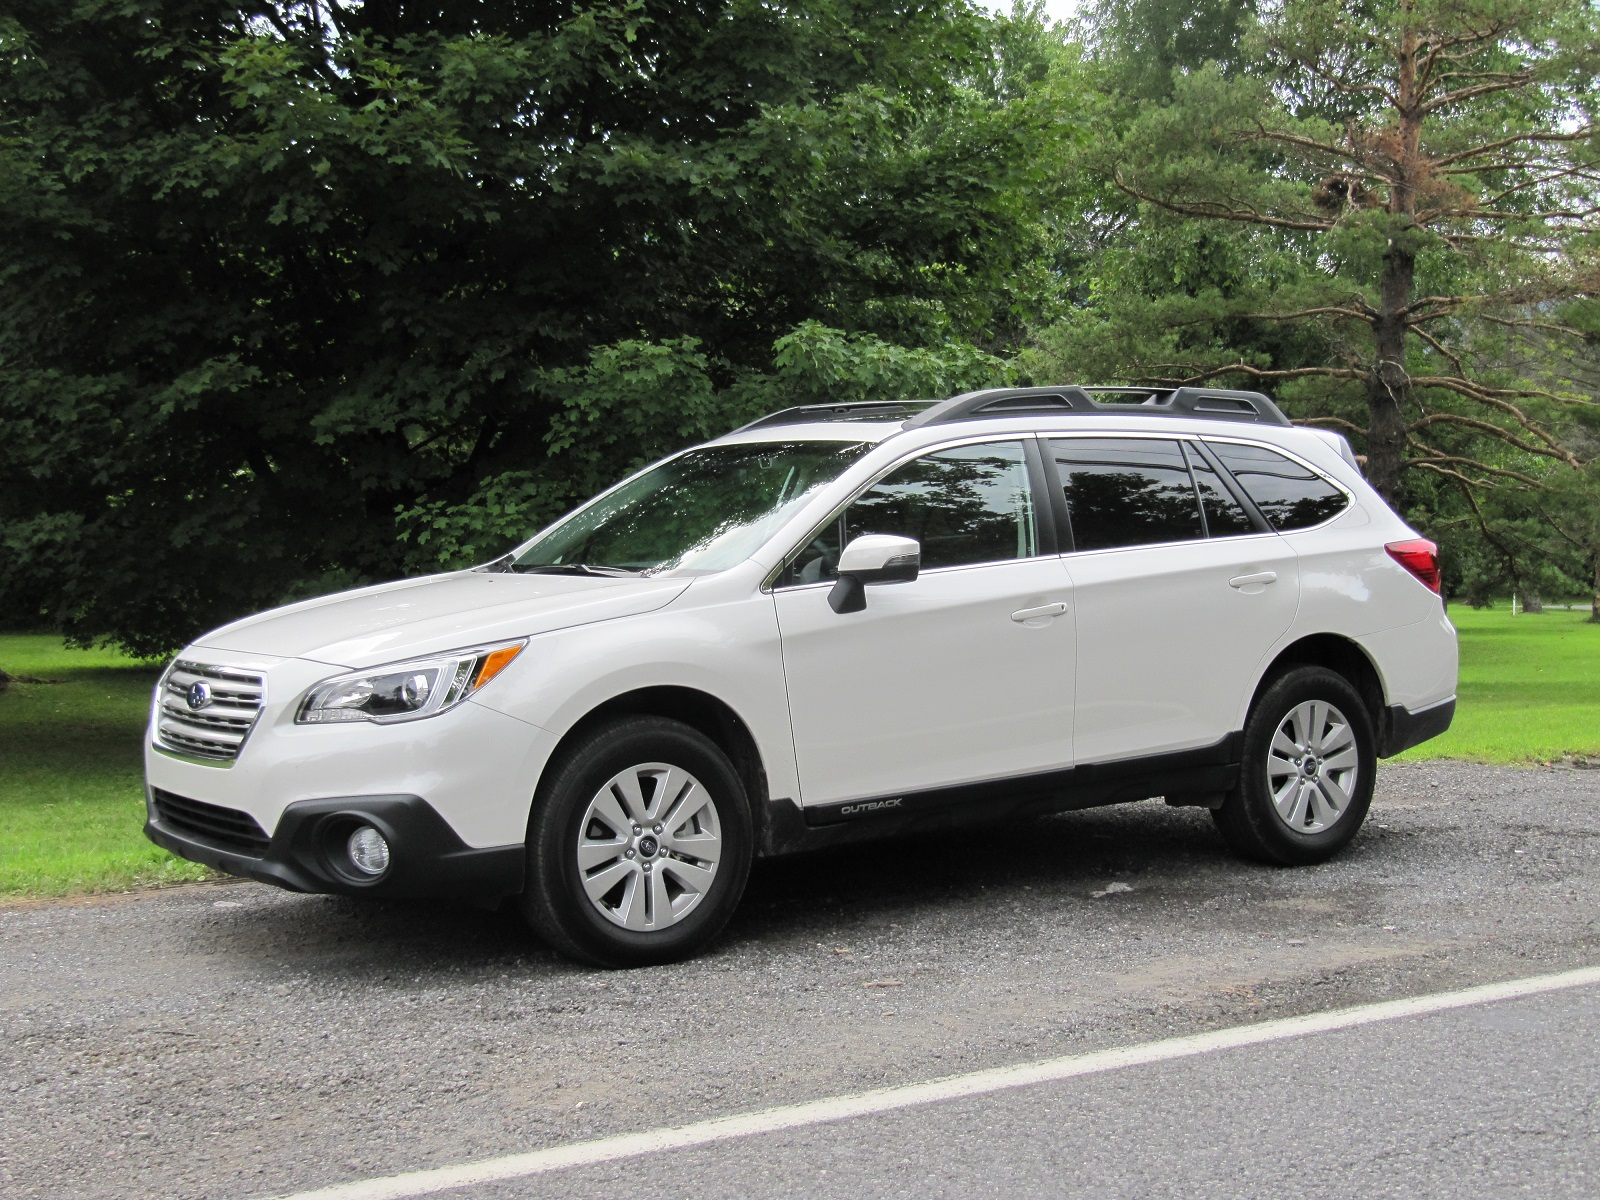 Fort Worth Toyota >> 2015 Subaru Outback Review, Ratings, Specs, Prices, and ...